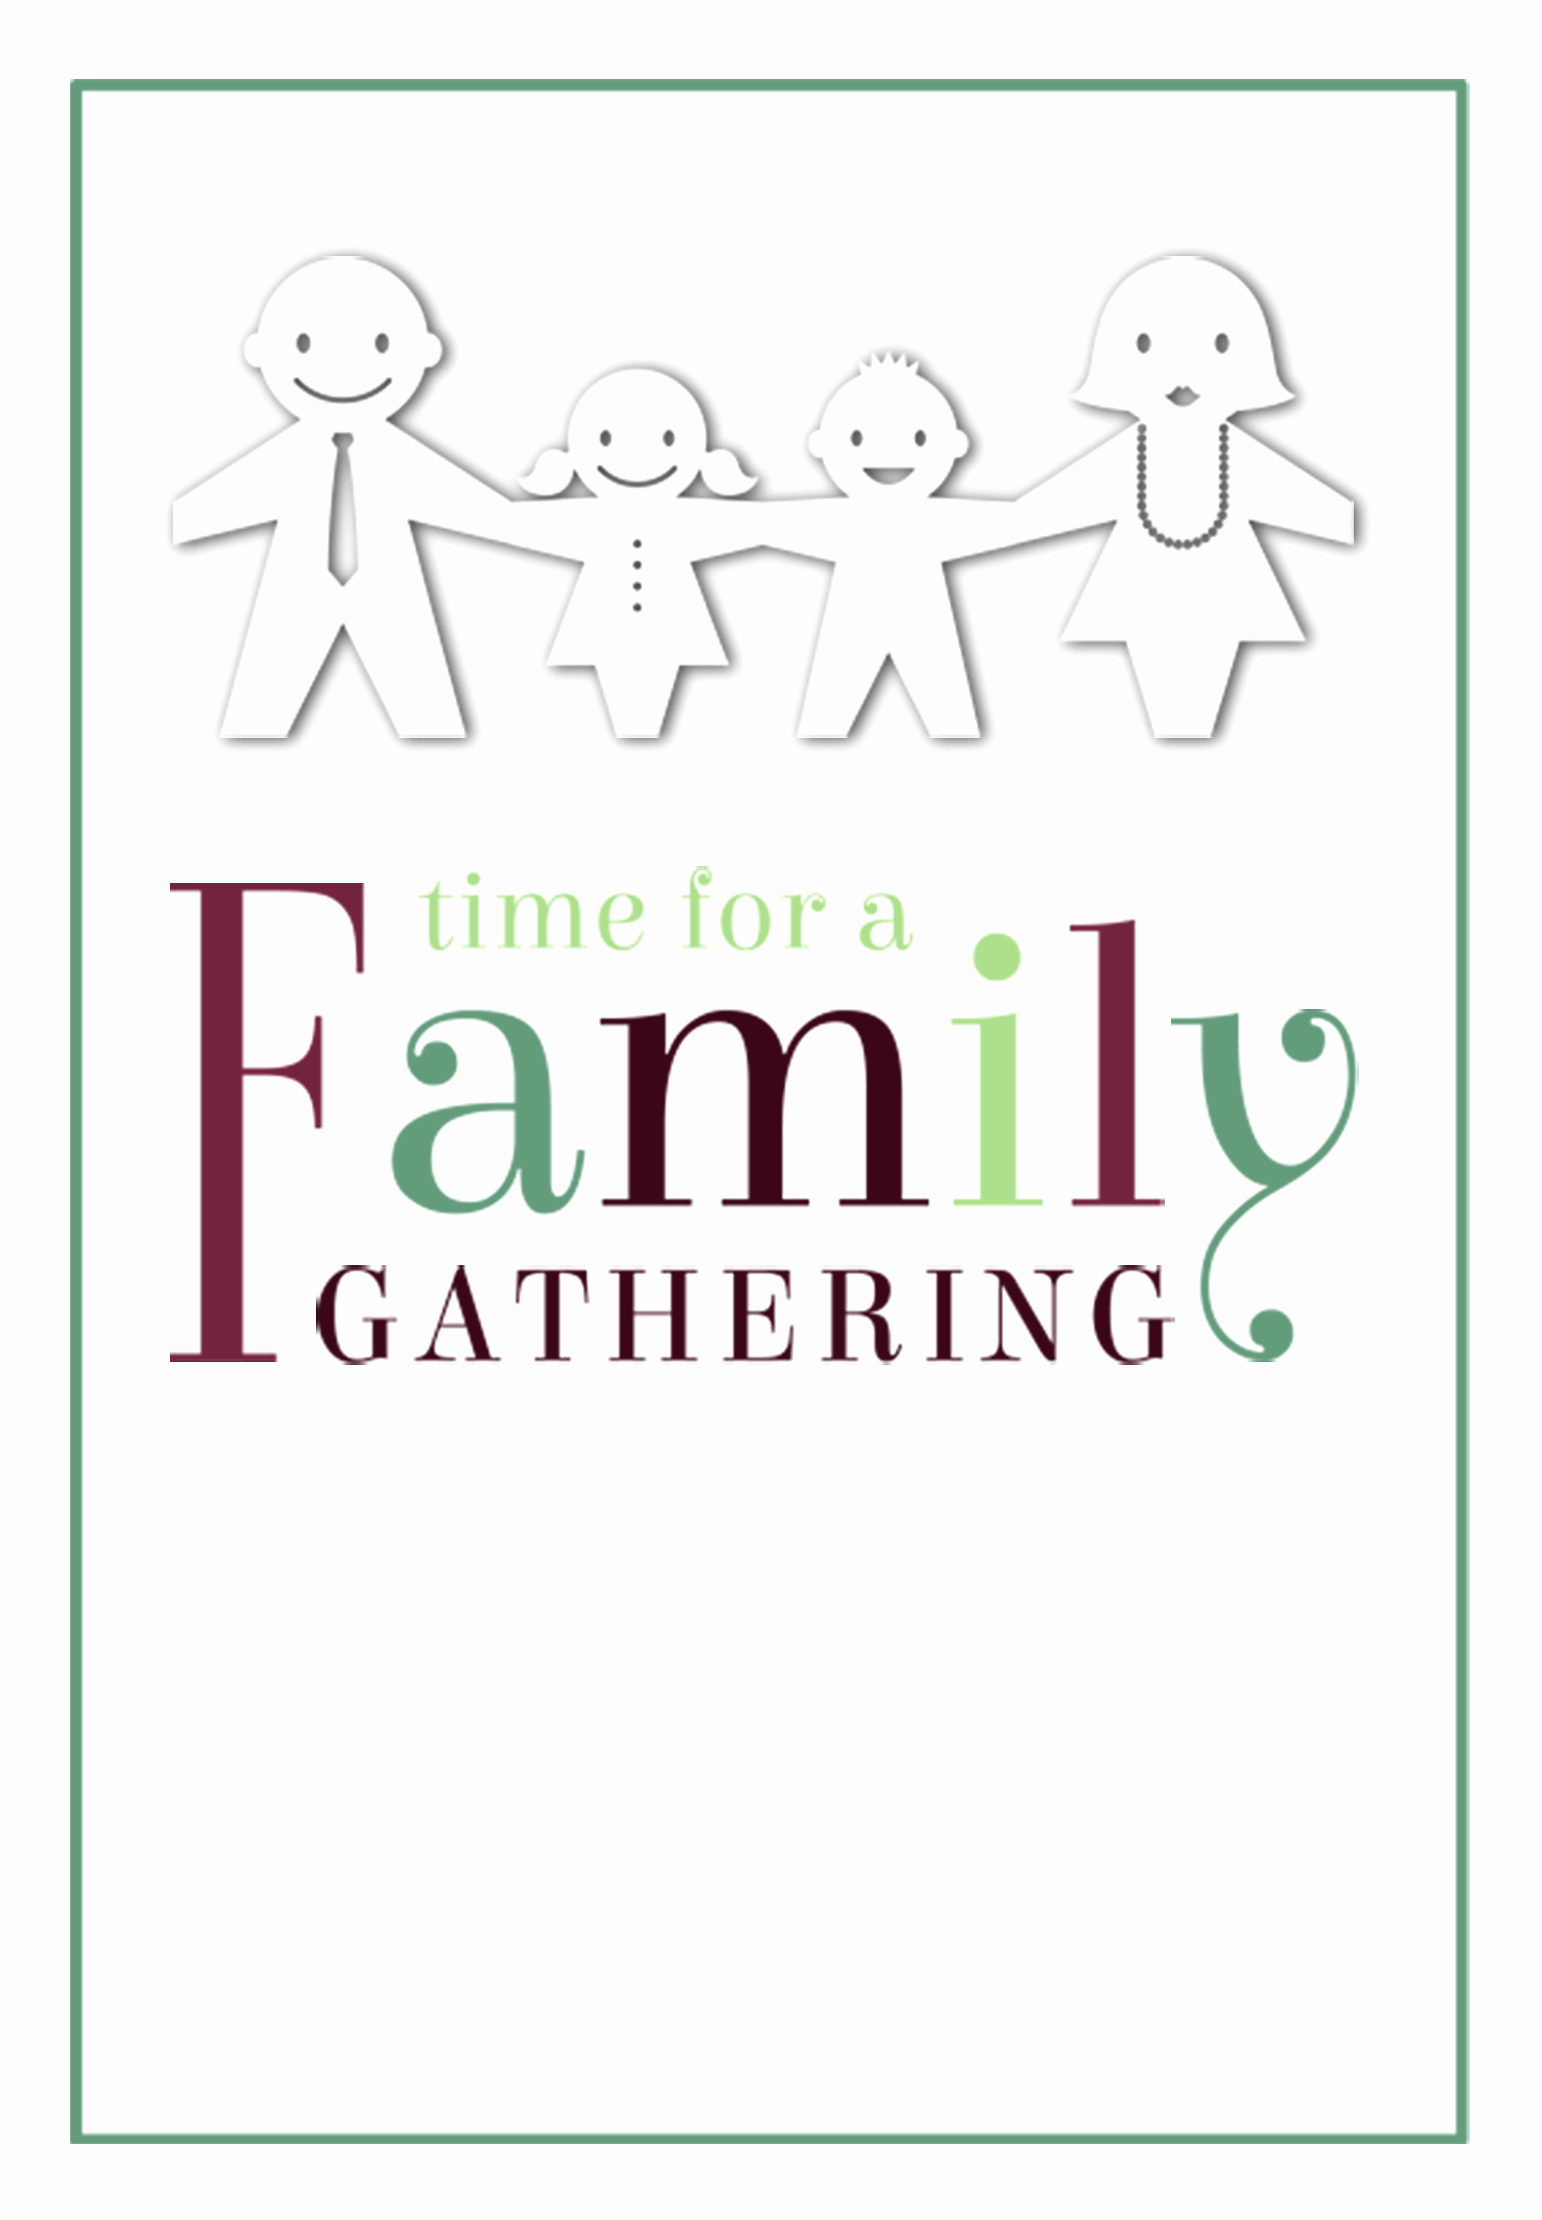 Family Reunion Invitation Templates Free Inspirational Time for A Family Gathering Free Printable Family